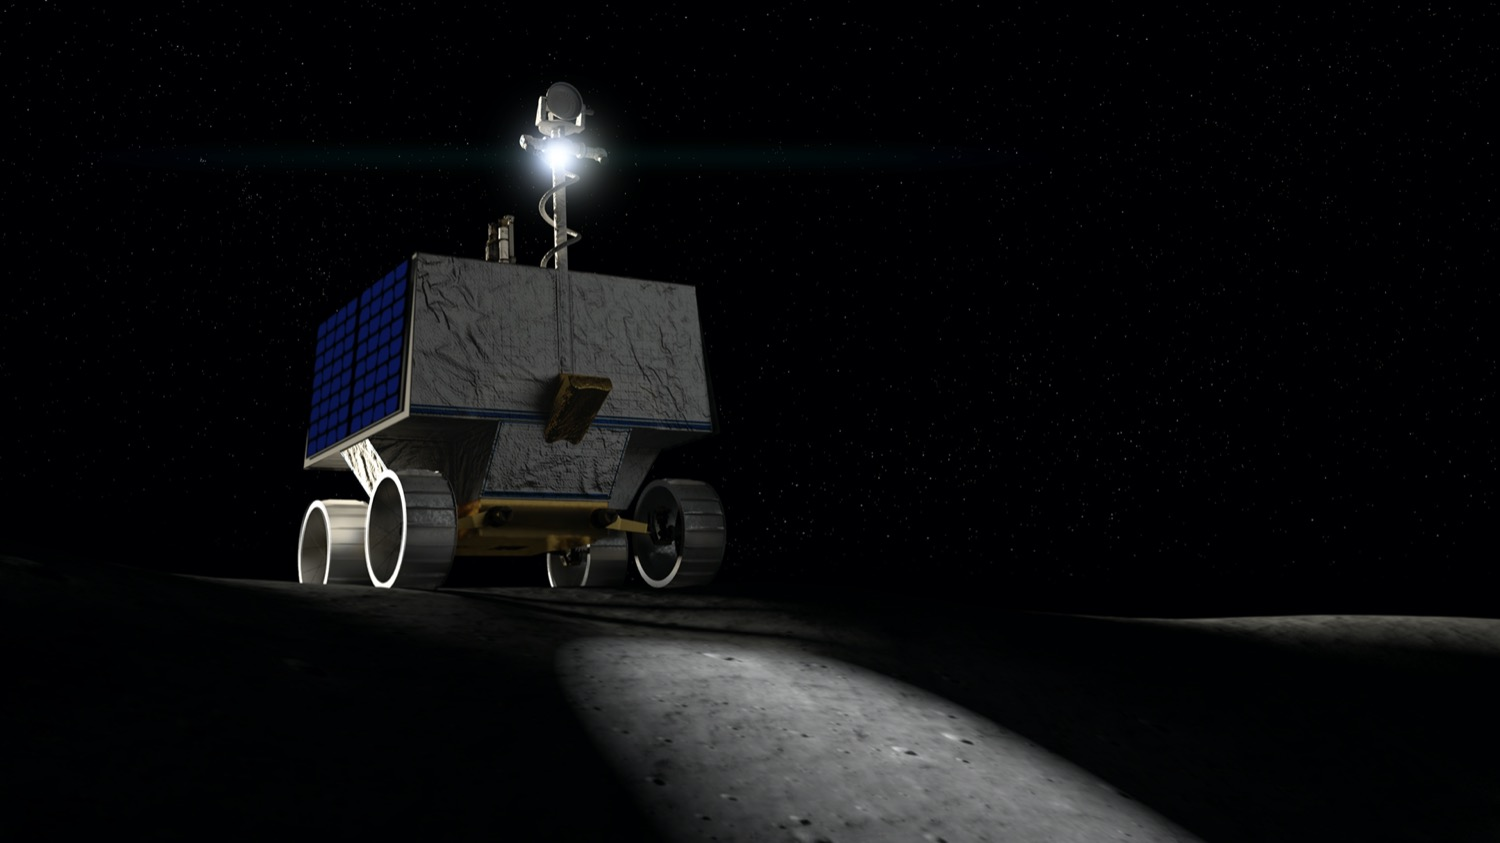 a cgi image of a boxy rover on the moon with a flashlight